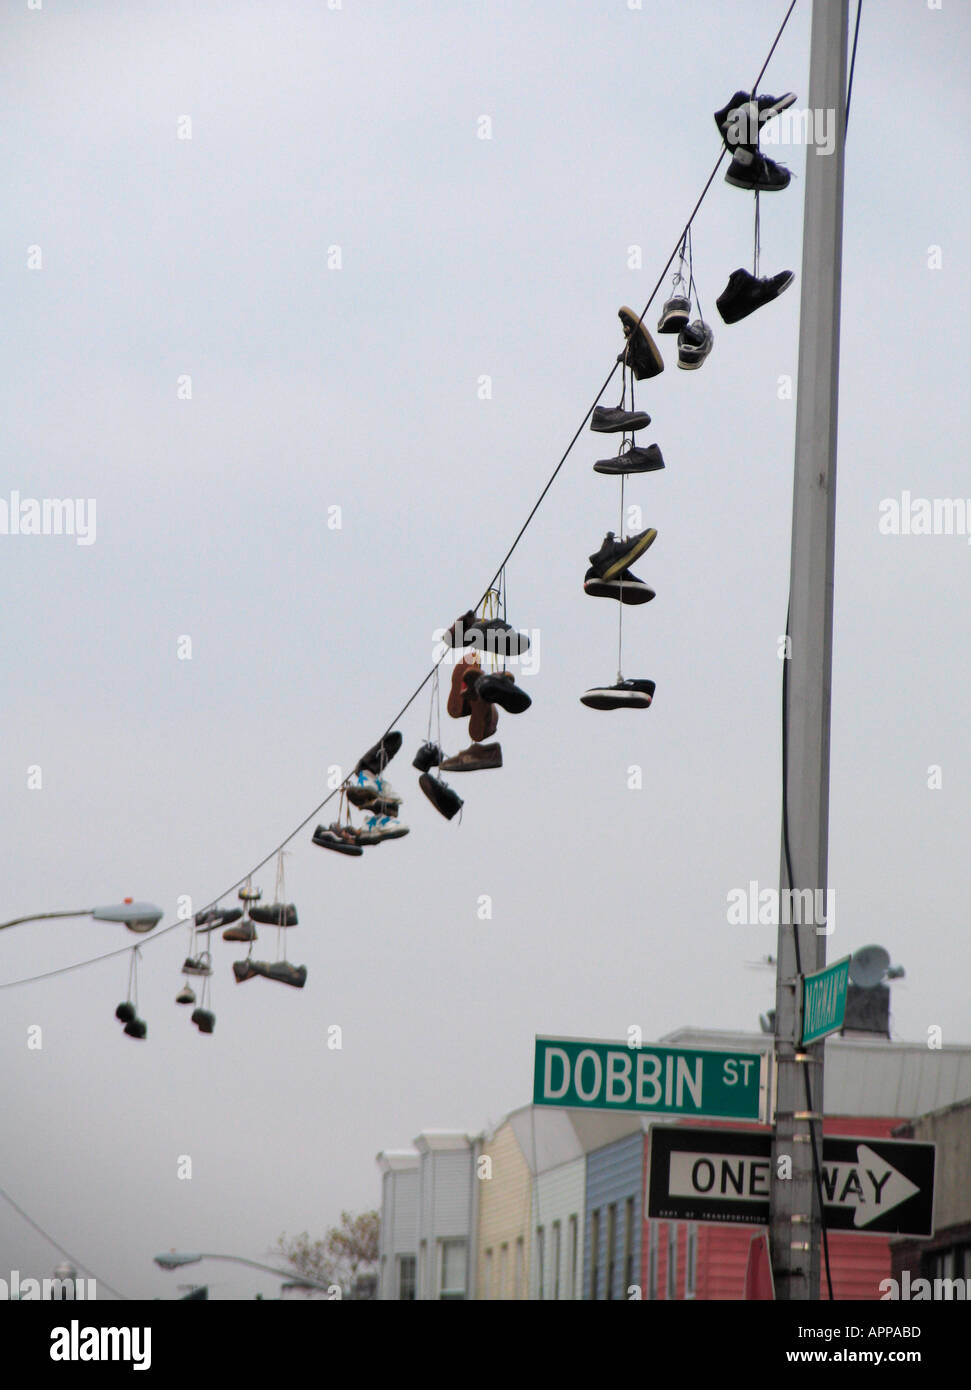 Shoes hanging on electric line Brooklyn New York - Stock Image